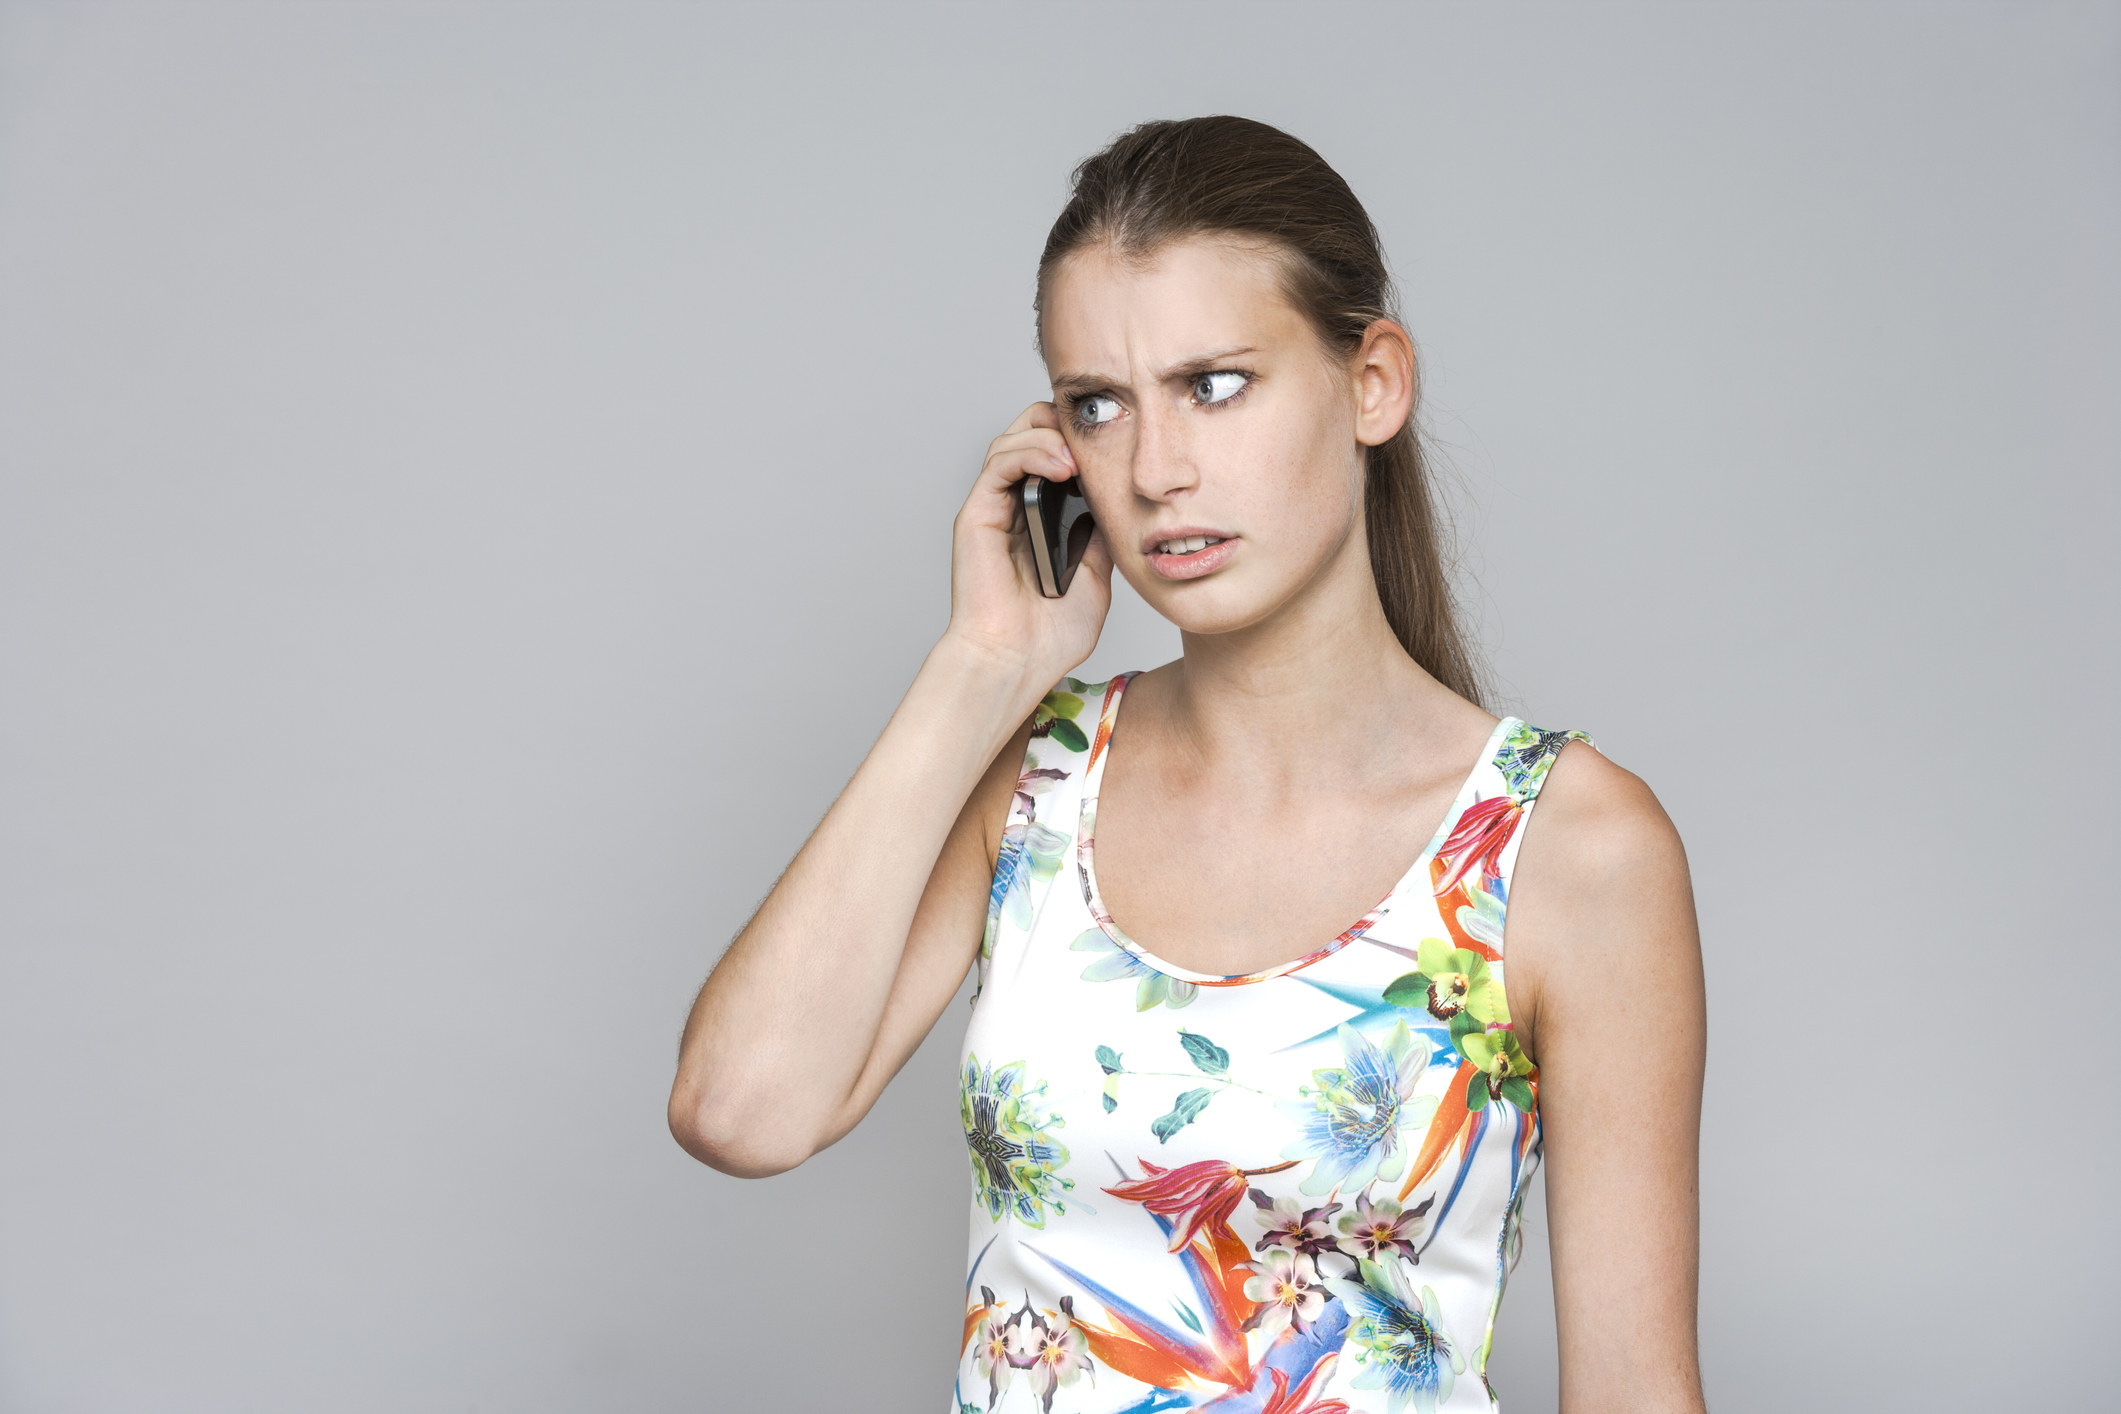 A photo of a woman looking confused on a phone